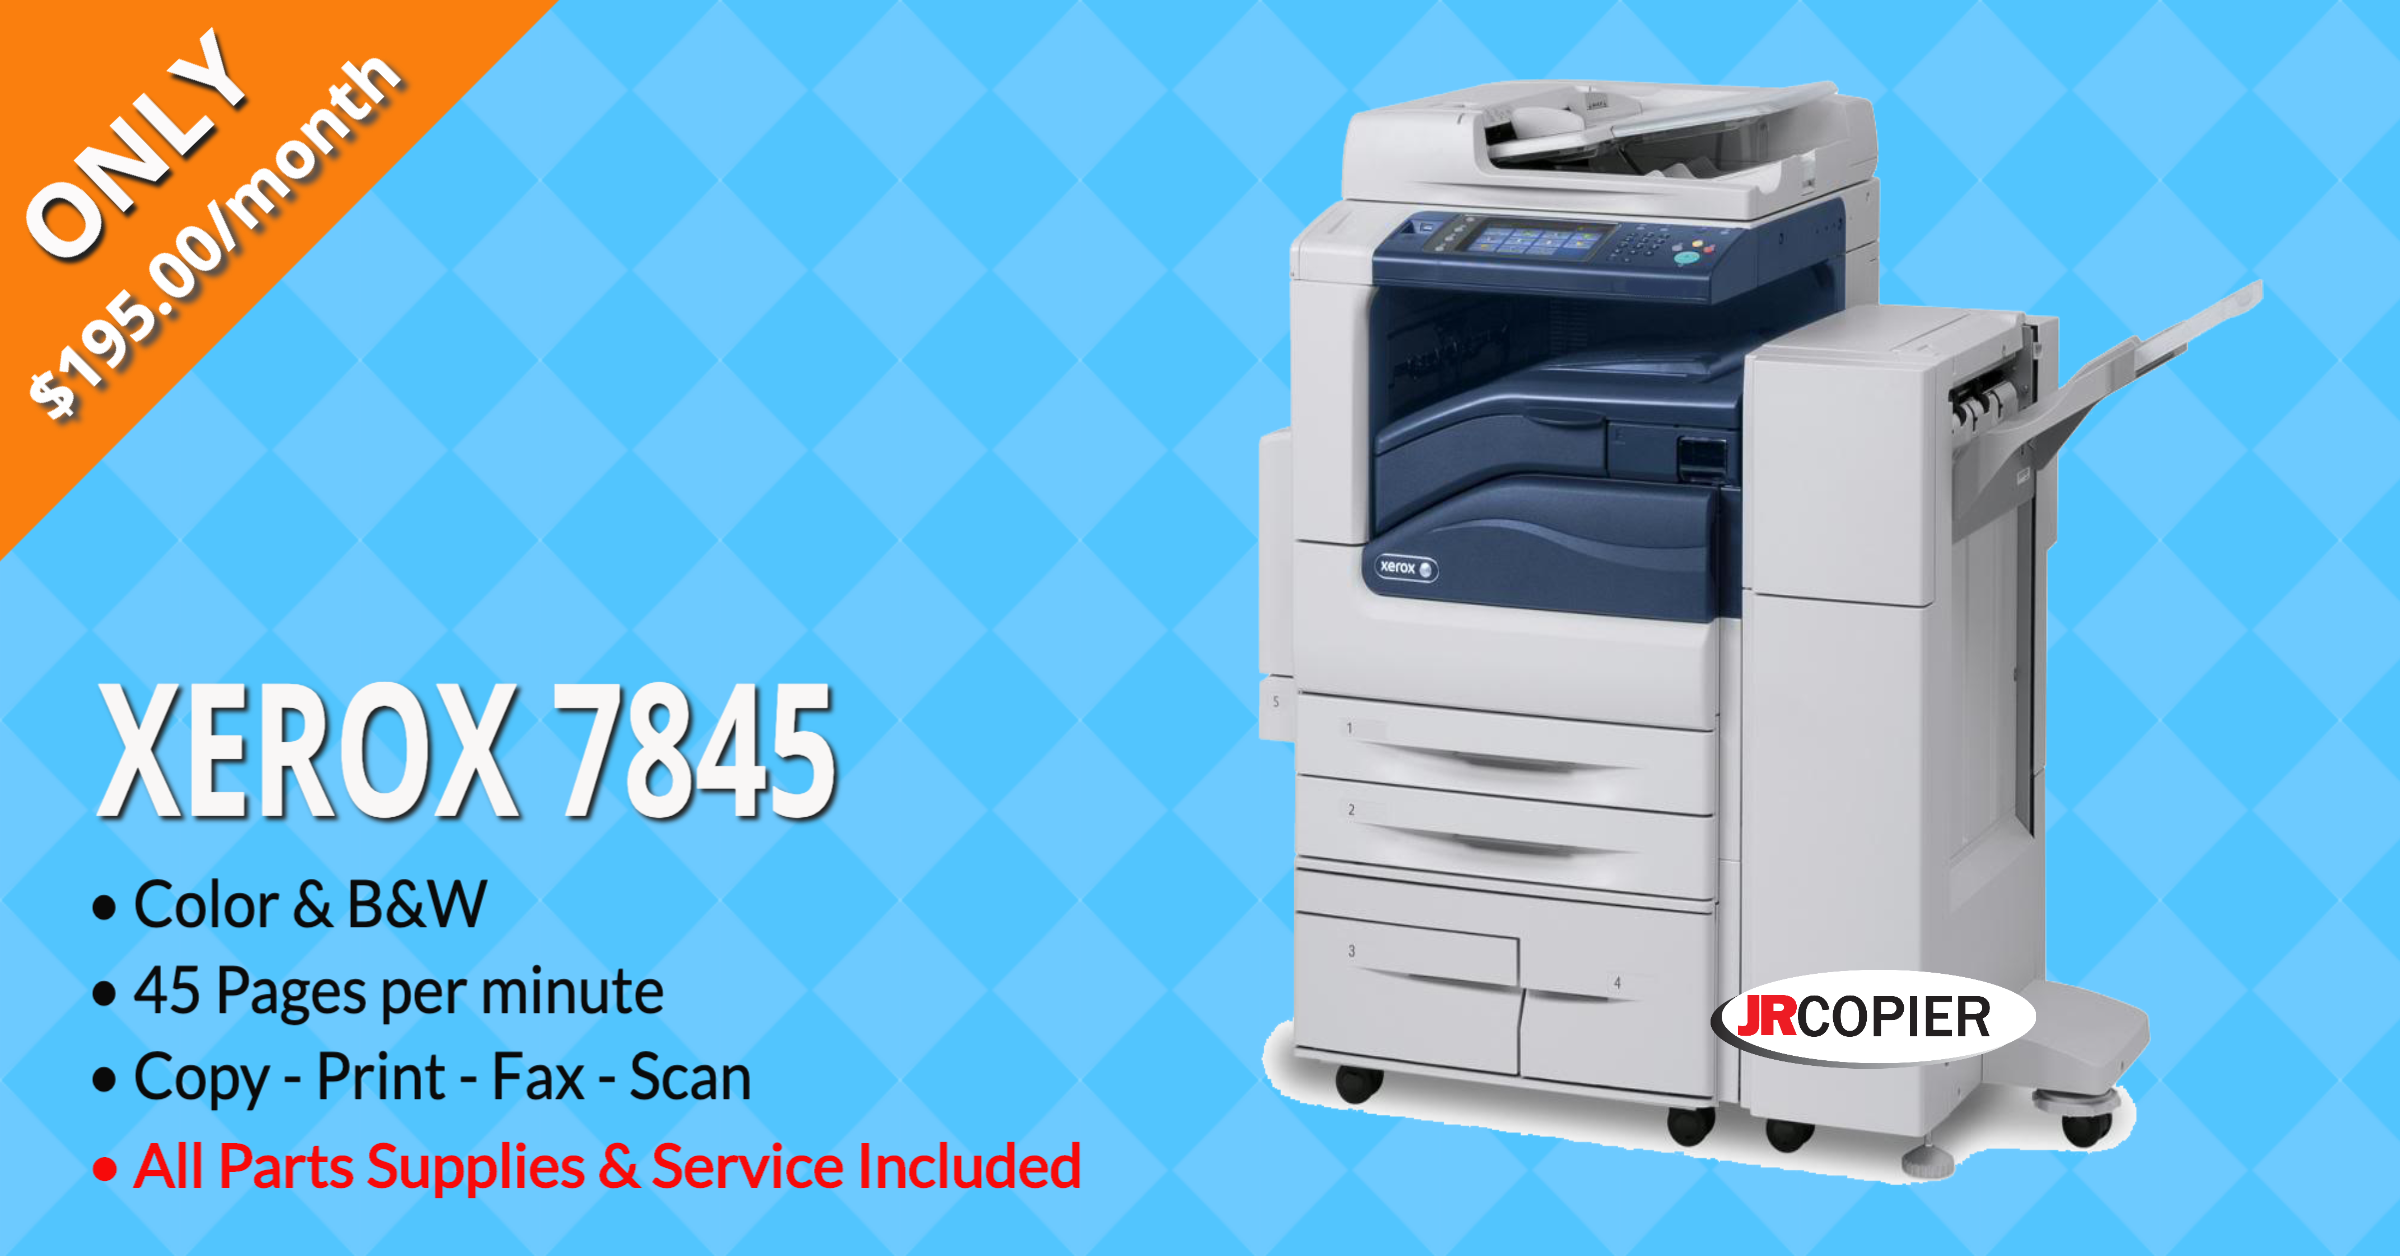 Laser Multifunction Printer 04005, 04006, 04007